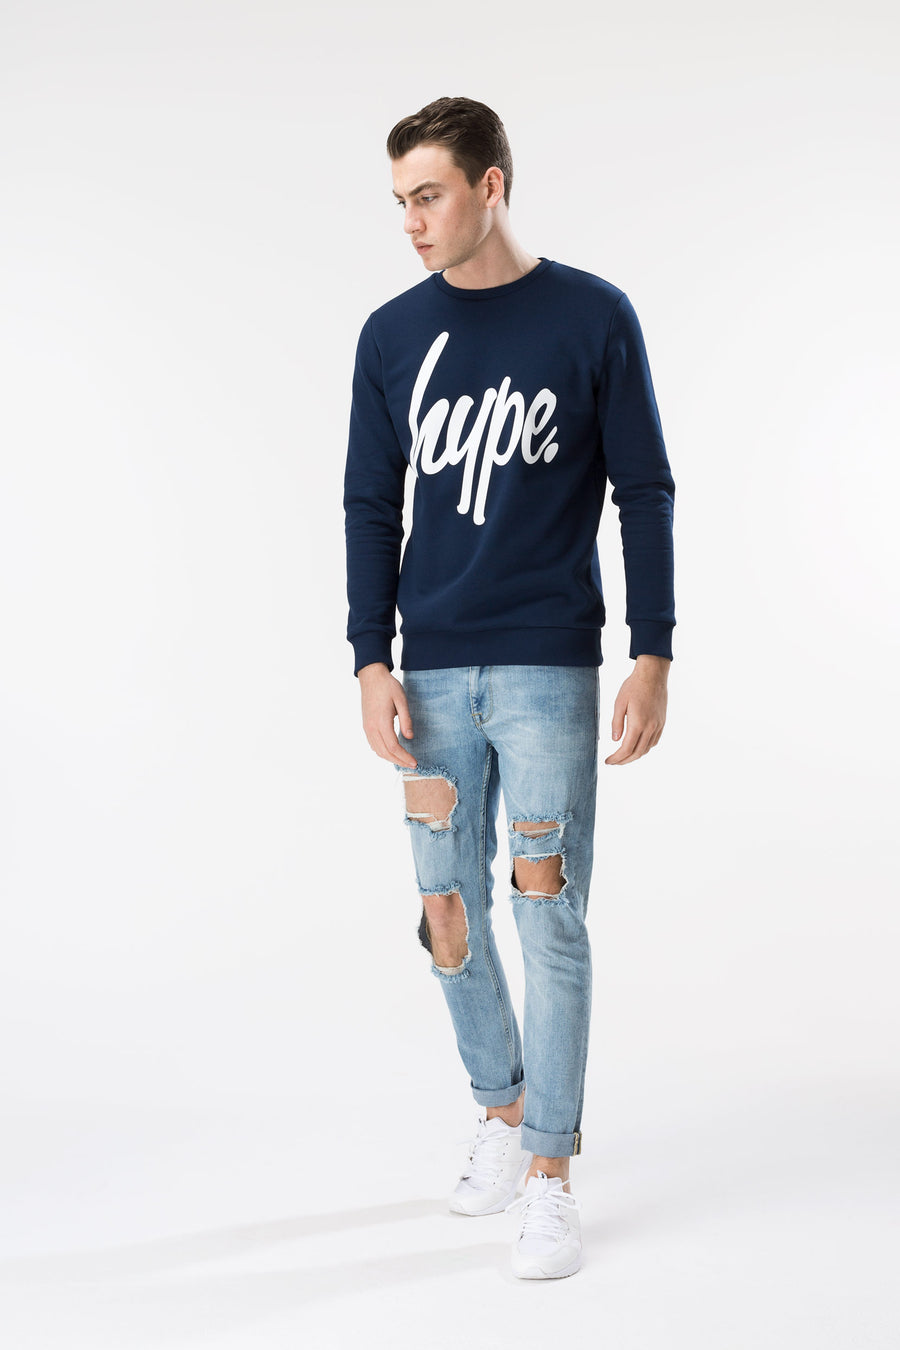 HYPE Blue Script Men's Crewneck